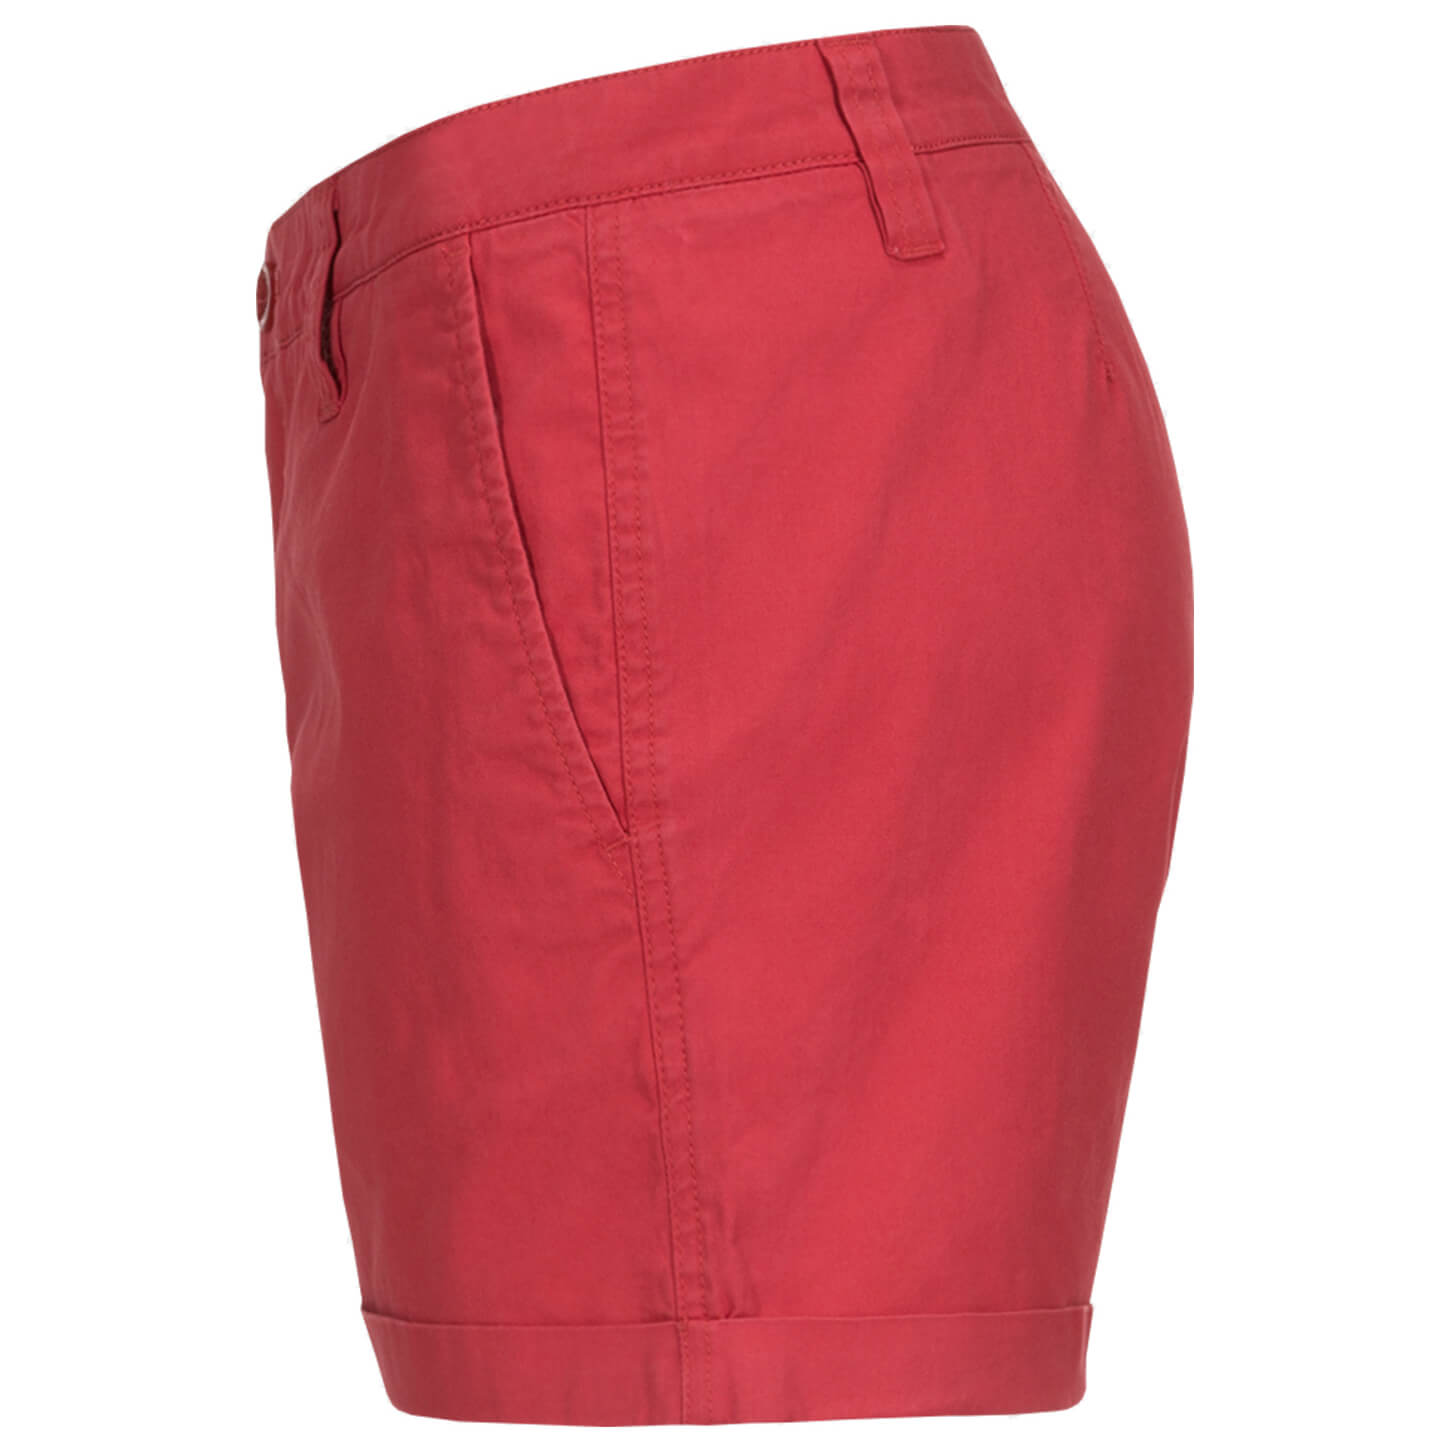 Peak Performance Roslyn - Shorts für Damen - Schwarz Peak Performance